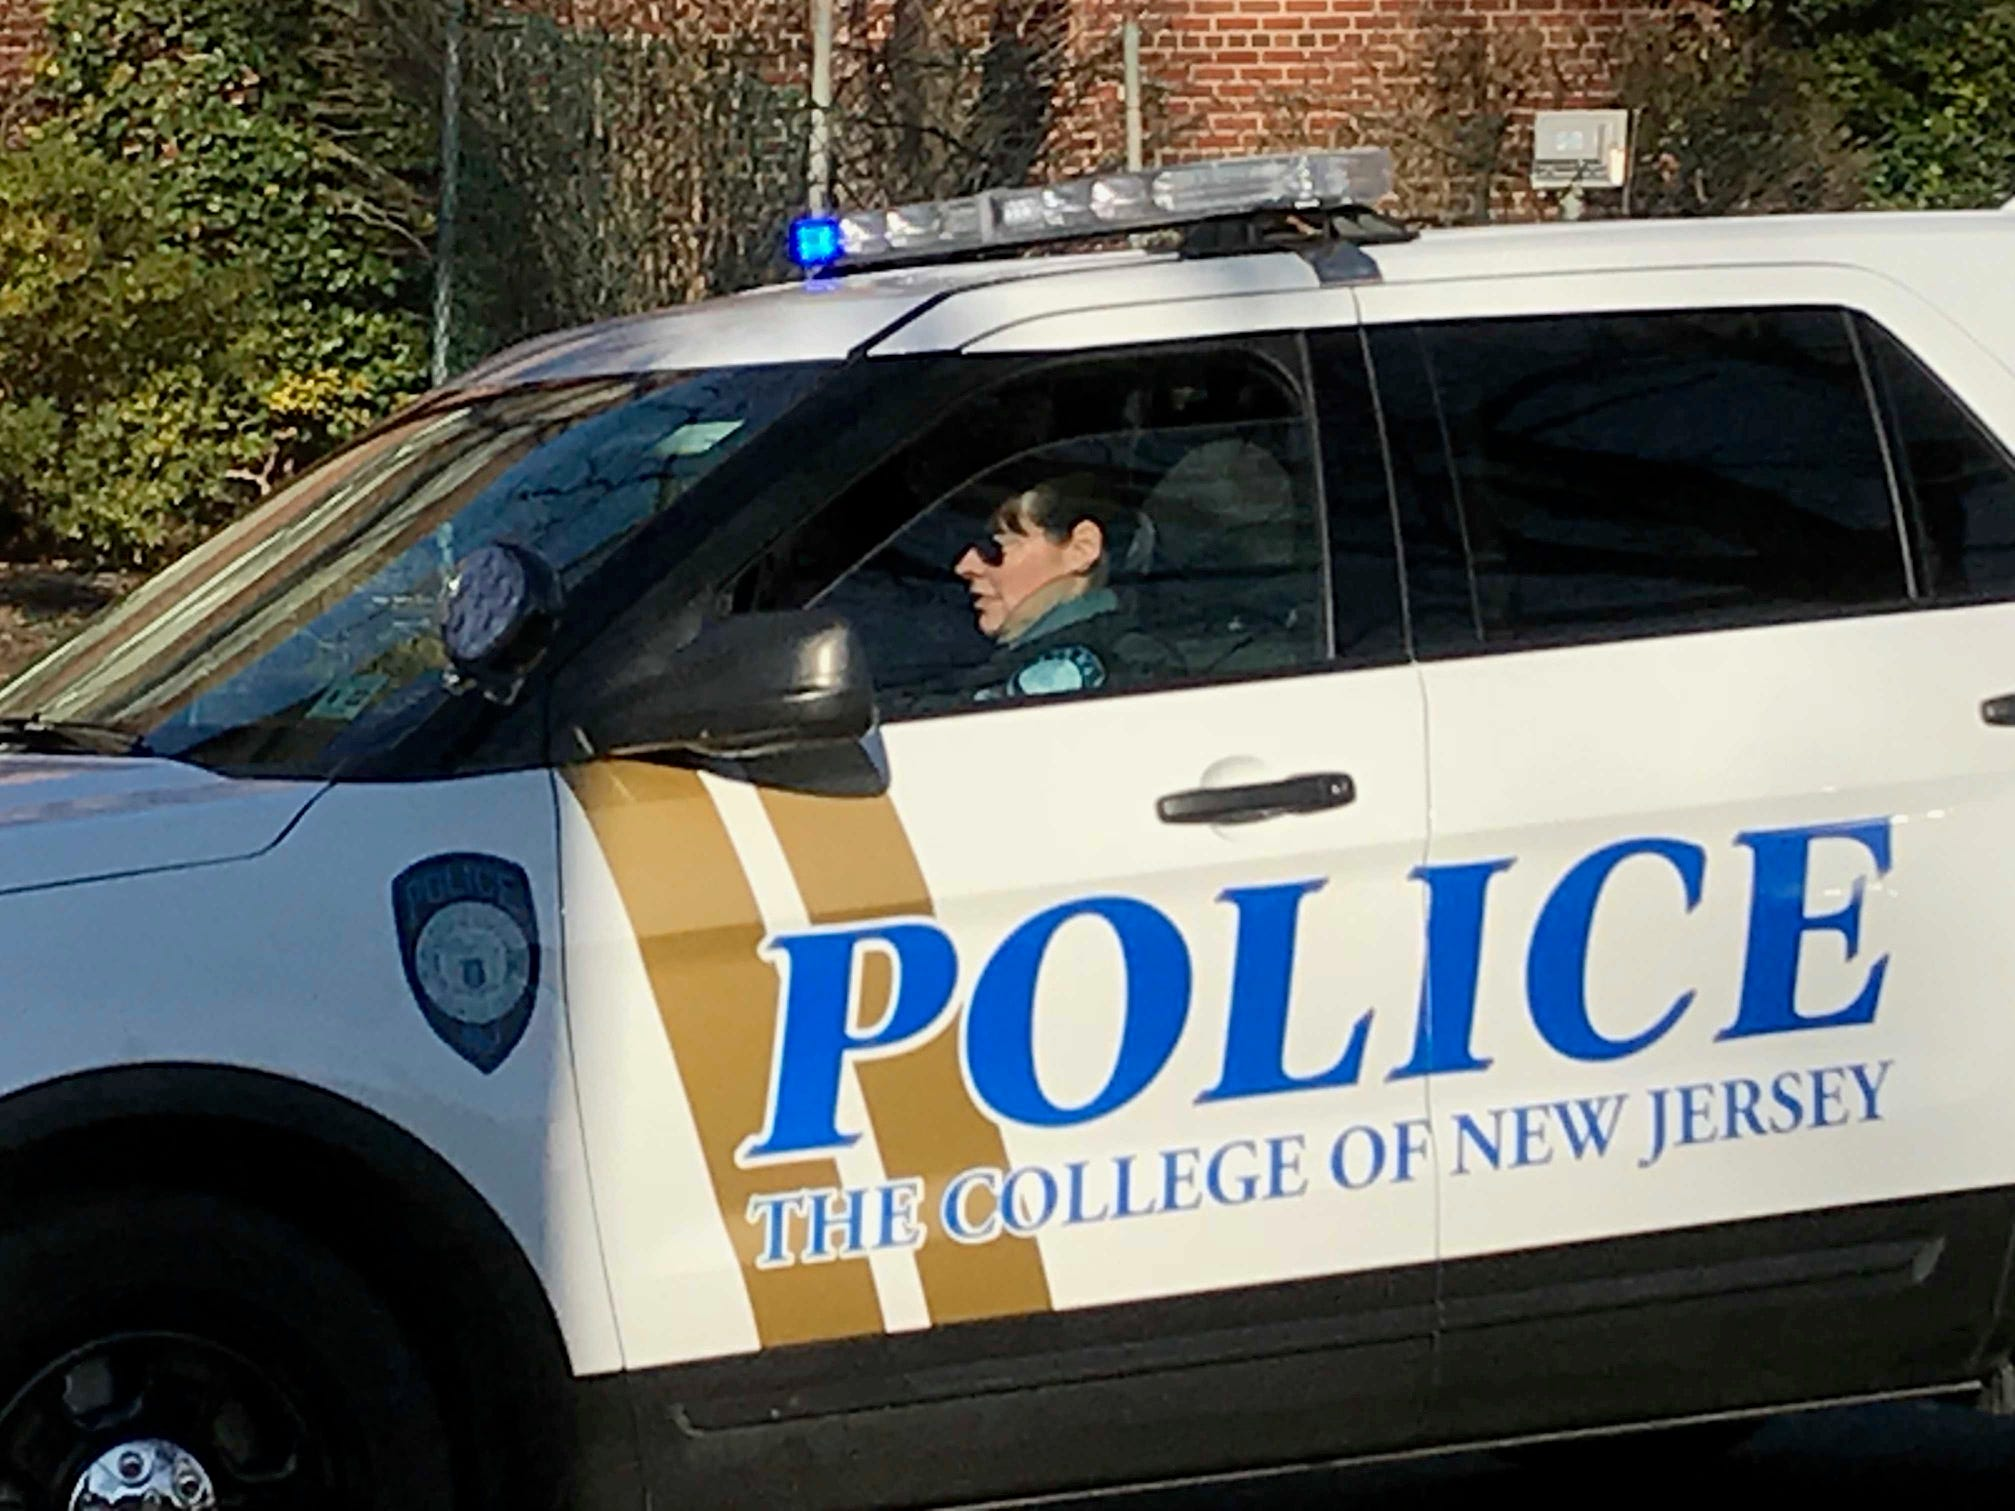 Michael Sot, 20, was a sophomore at The College of New Jersey in Ewing.  One of the school's police vehicles was in the funeral procession.